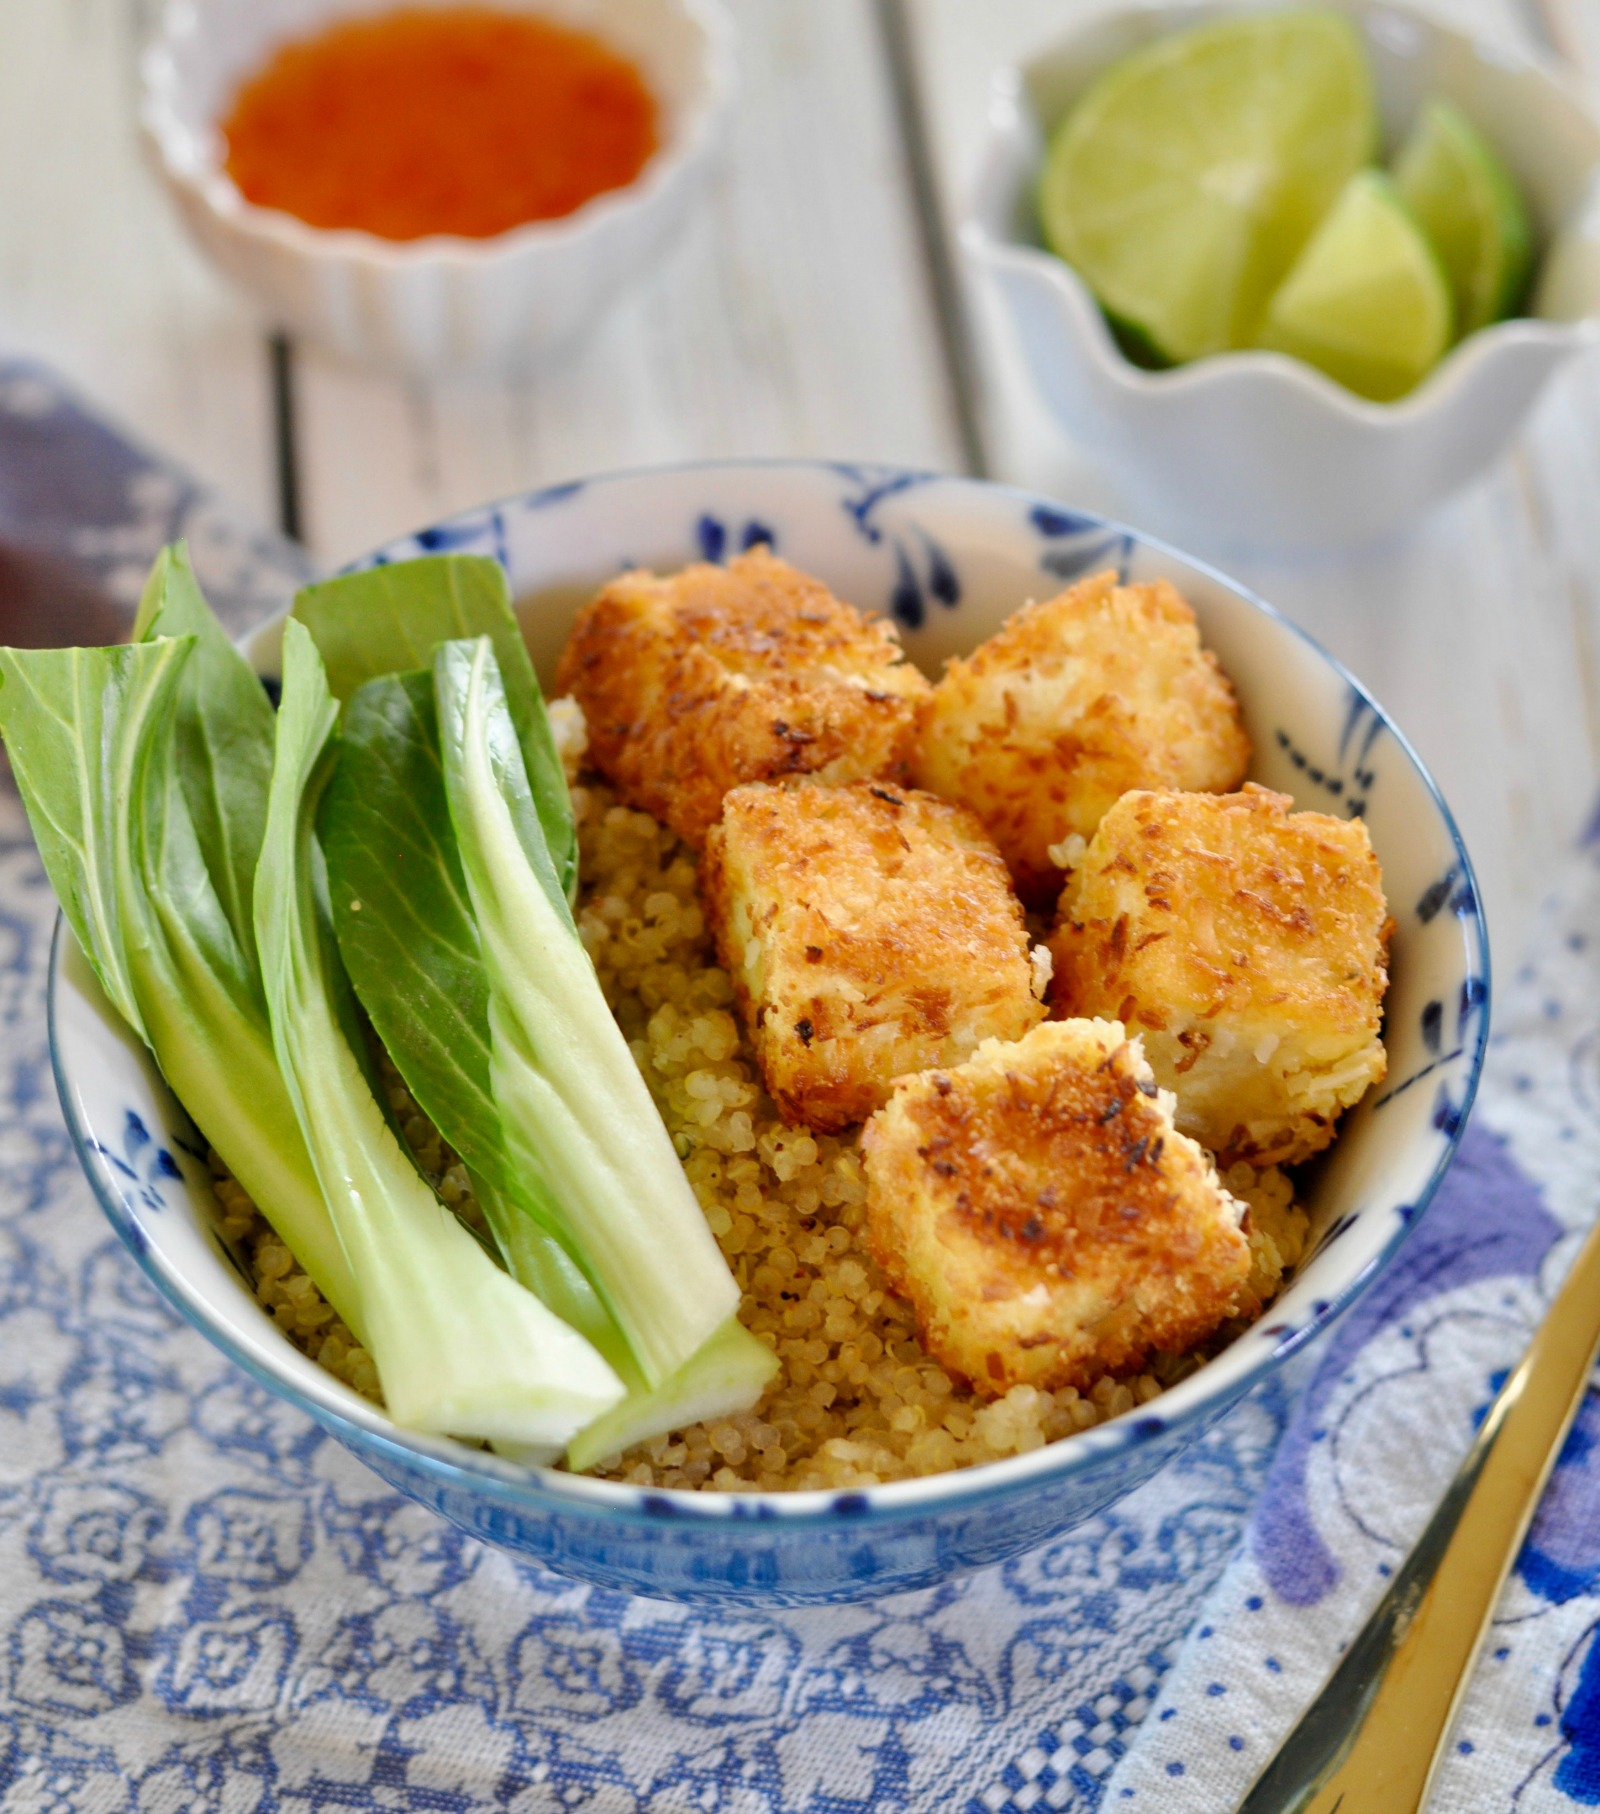 Treat your tastebuds to the crispy coconut flavors of this gluten-free easy baked tofu. This tofu can be enjoyed as a snack, on a salad or as meal of its own. (#vegan) ordinaryvegan.net